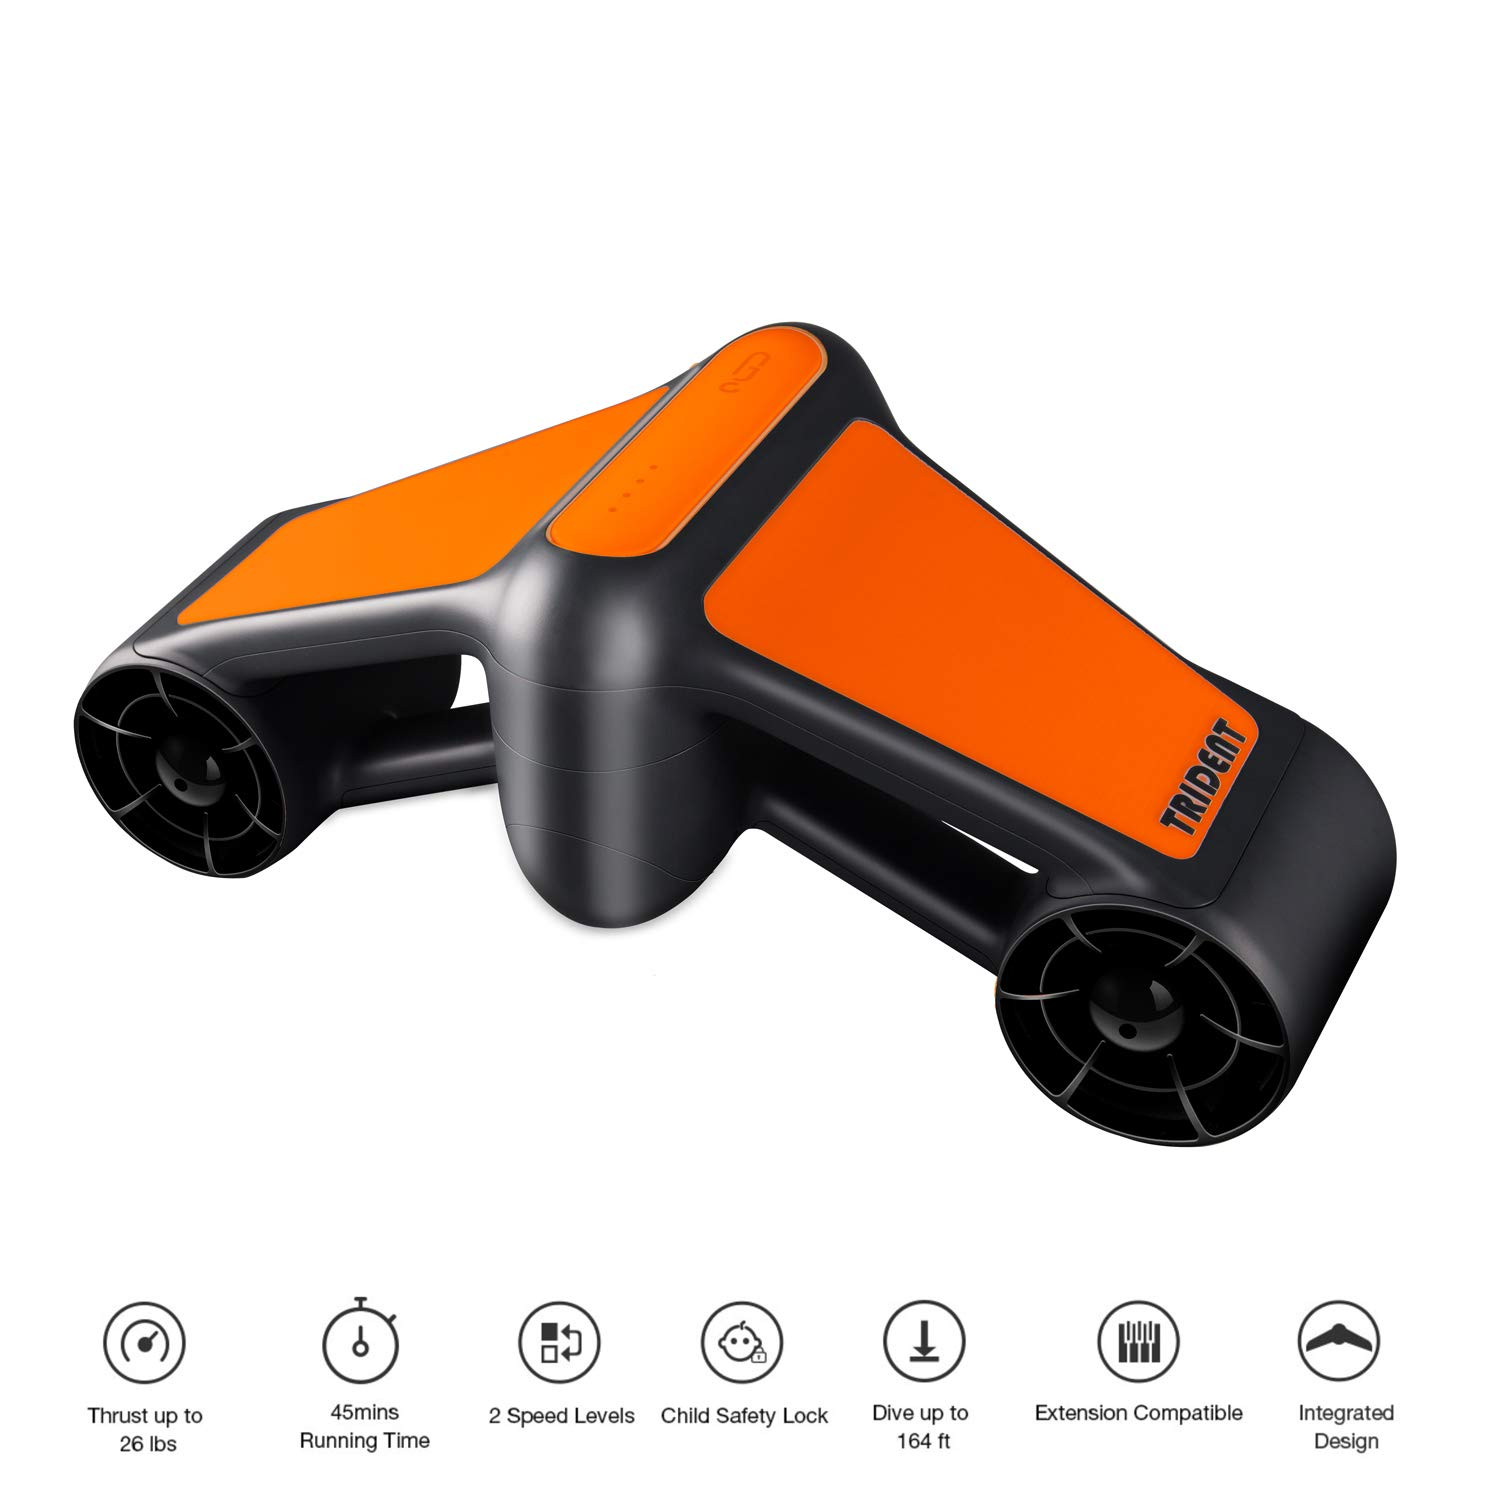 JASSCOL Trident Seascooter 164ft 4mph Underwater Scooter 2 Speed Snorkeling Scuba Diving Go Pro Compatible